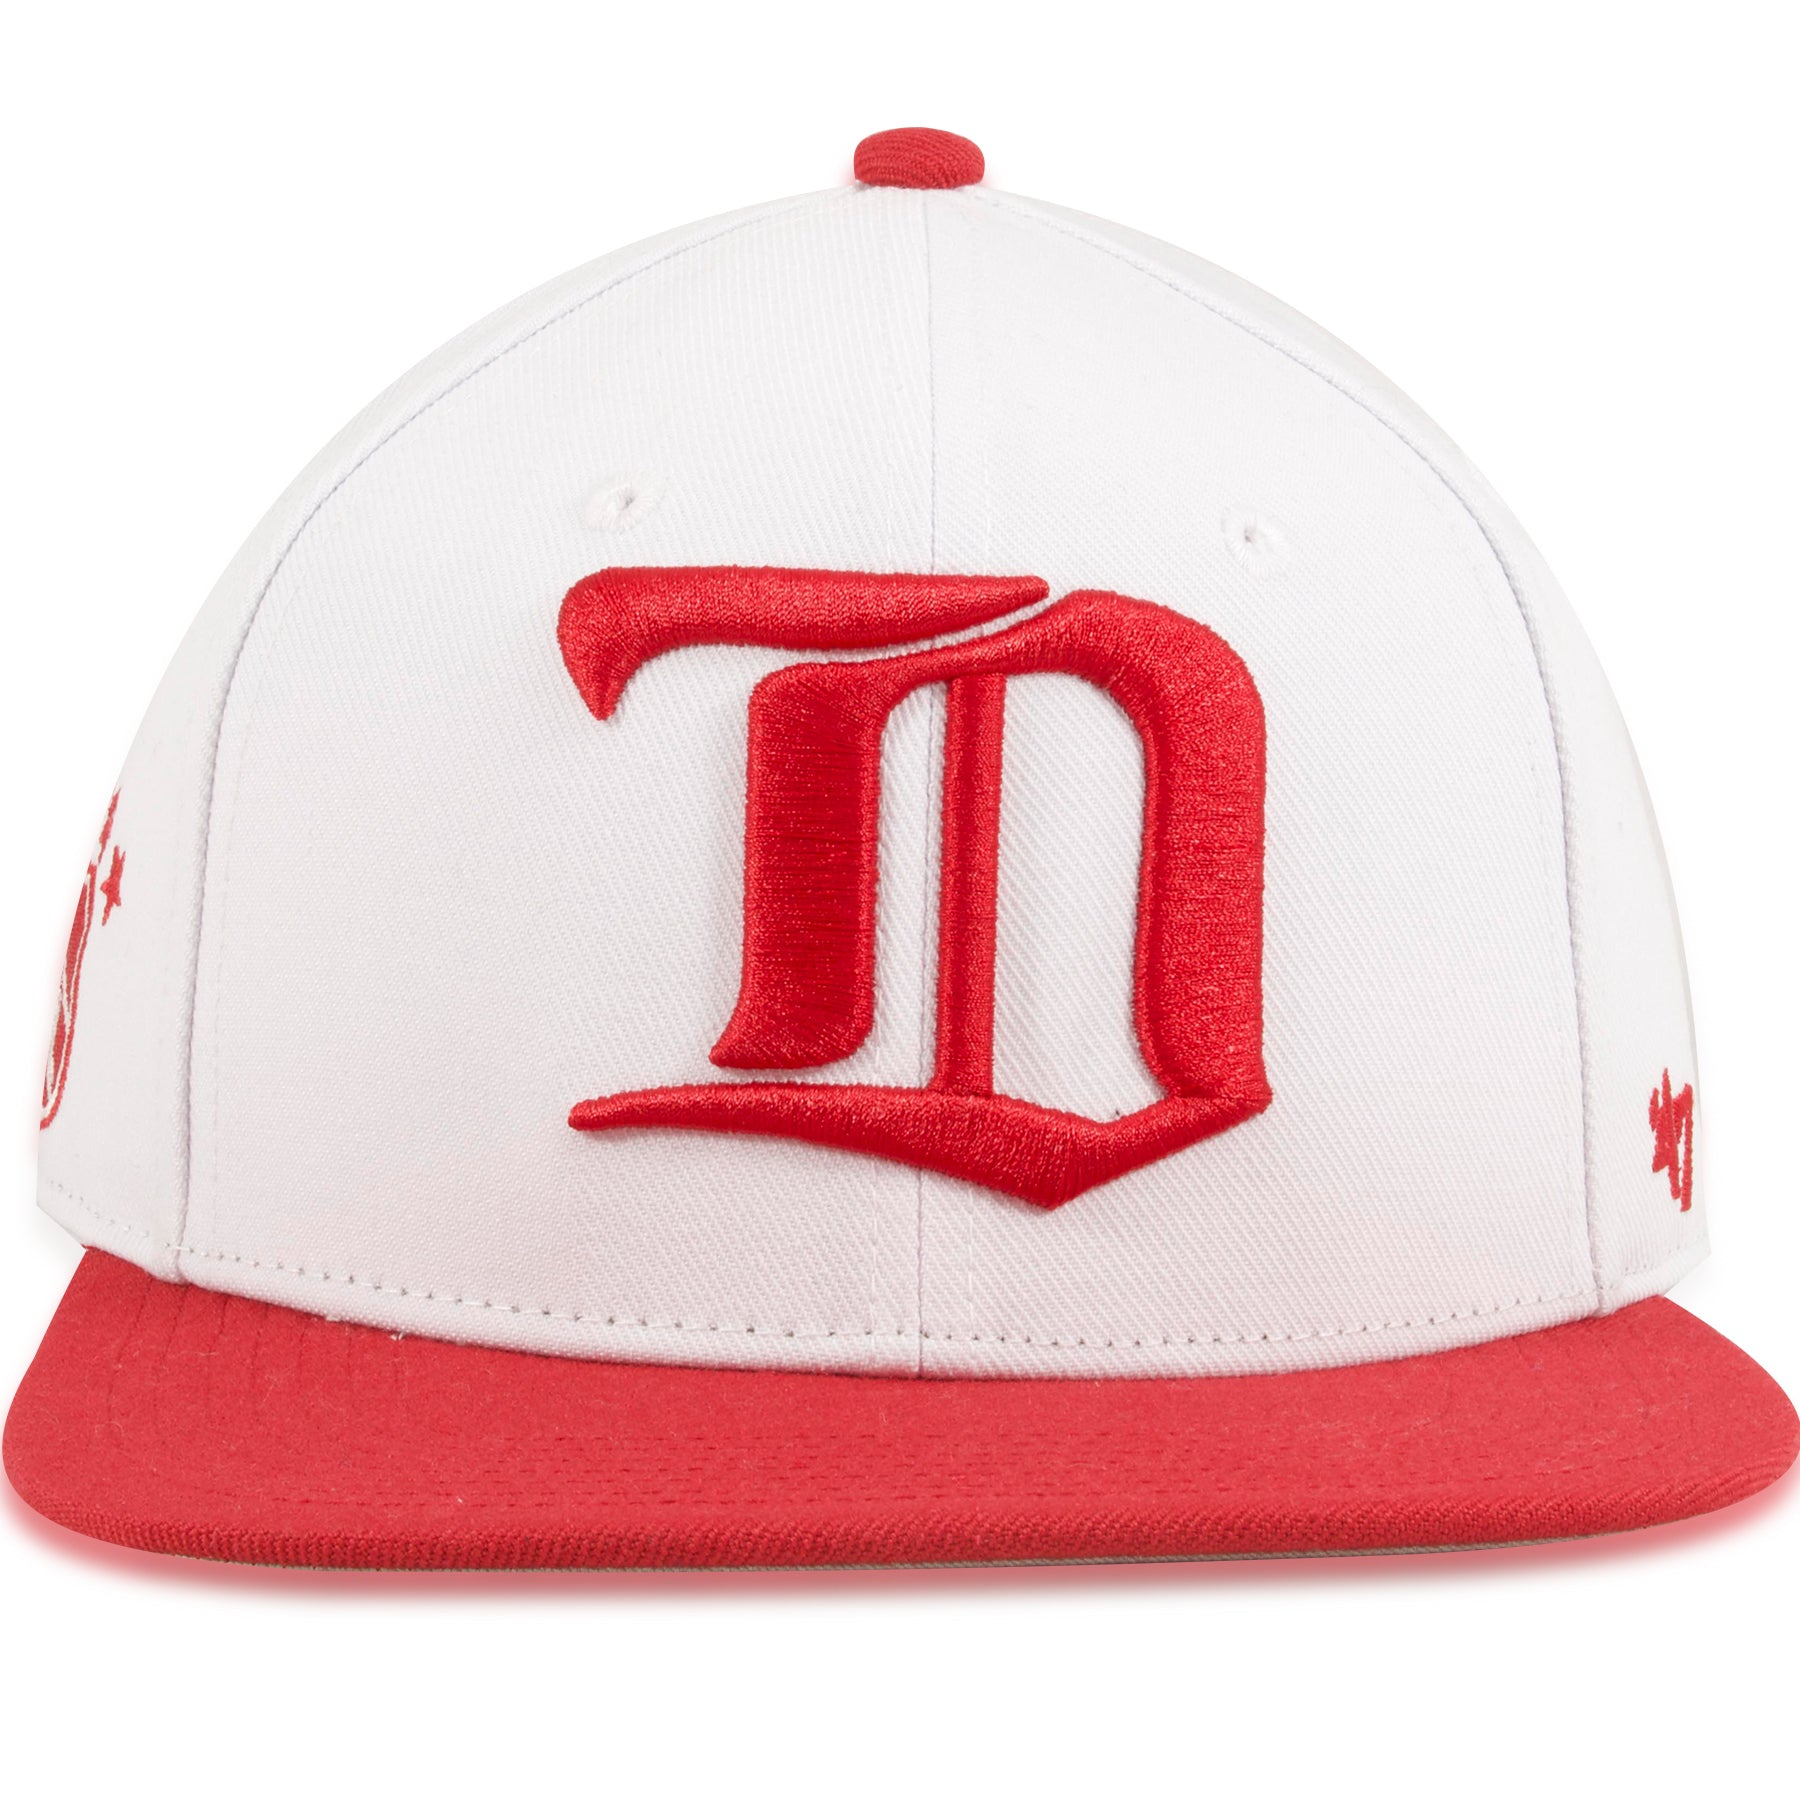 e90c48af Detroit Red Wings Two Tone White / Red Sure Shot '47 Brand Snapback Hat